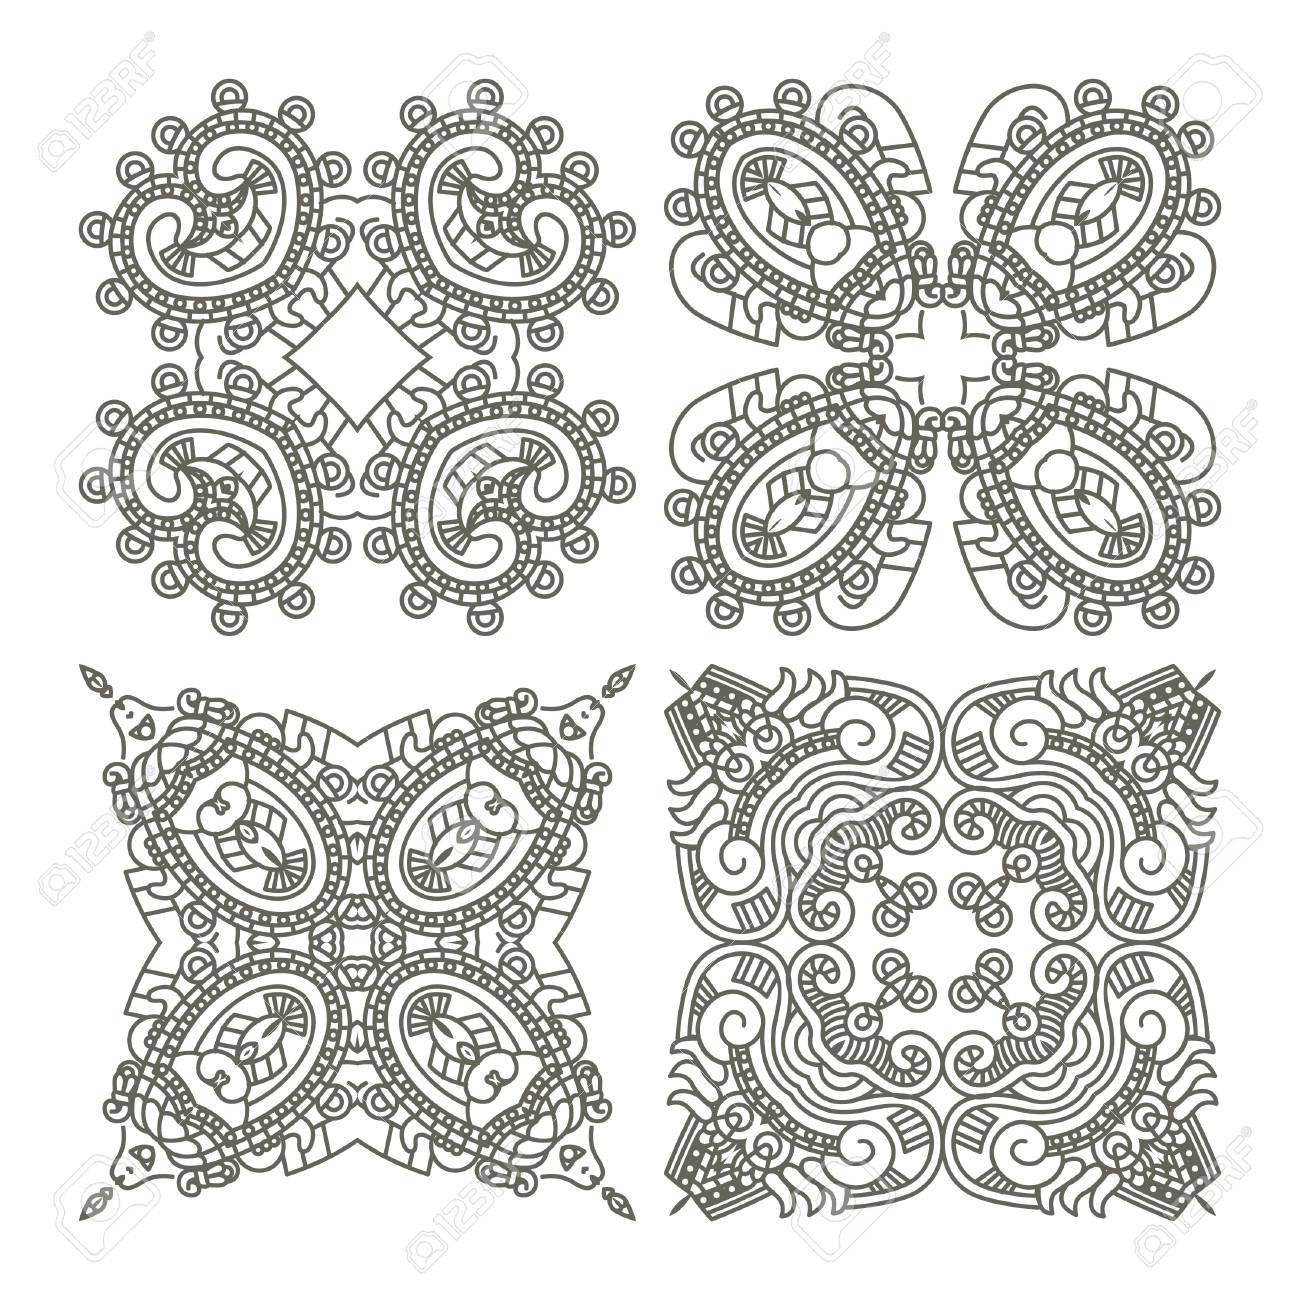 Wallpaper with aztec ornament in gray colors, design element Stock Vector - 13204998